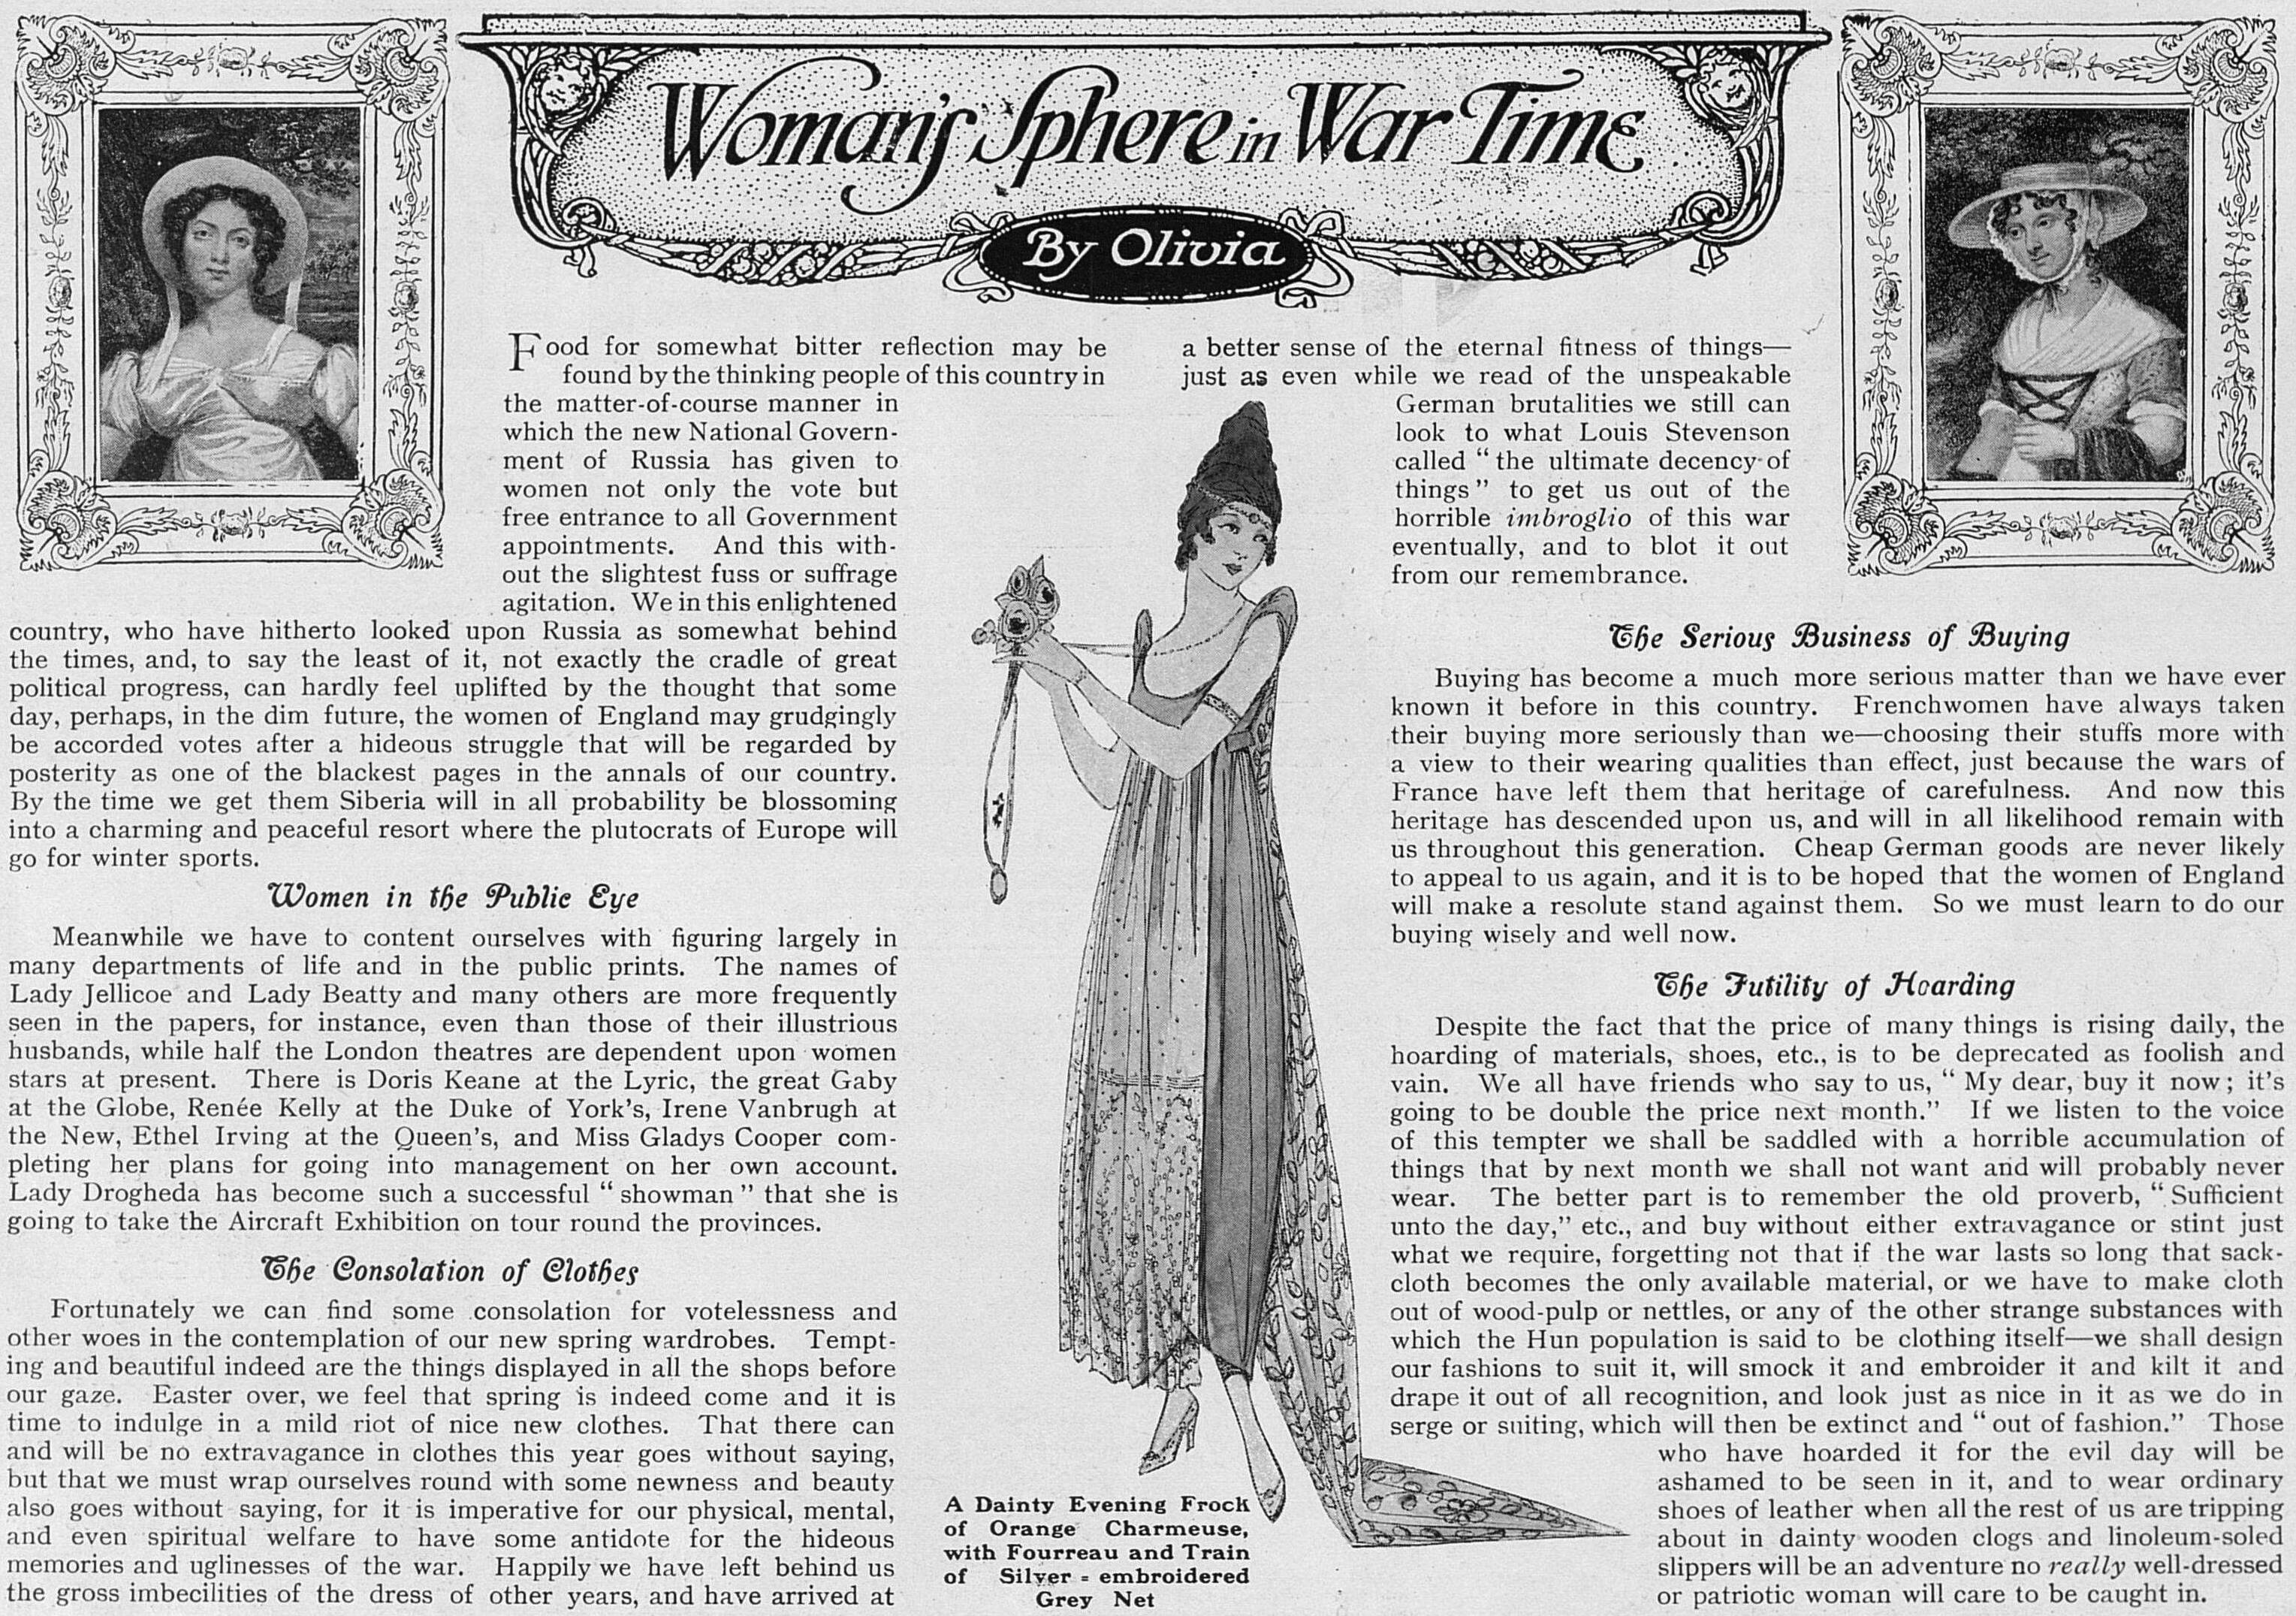 WomansSphereInWarTime_14Apr1917